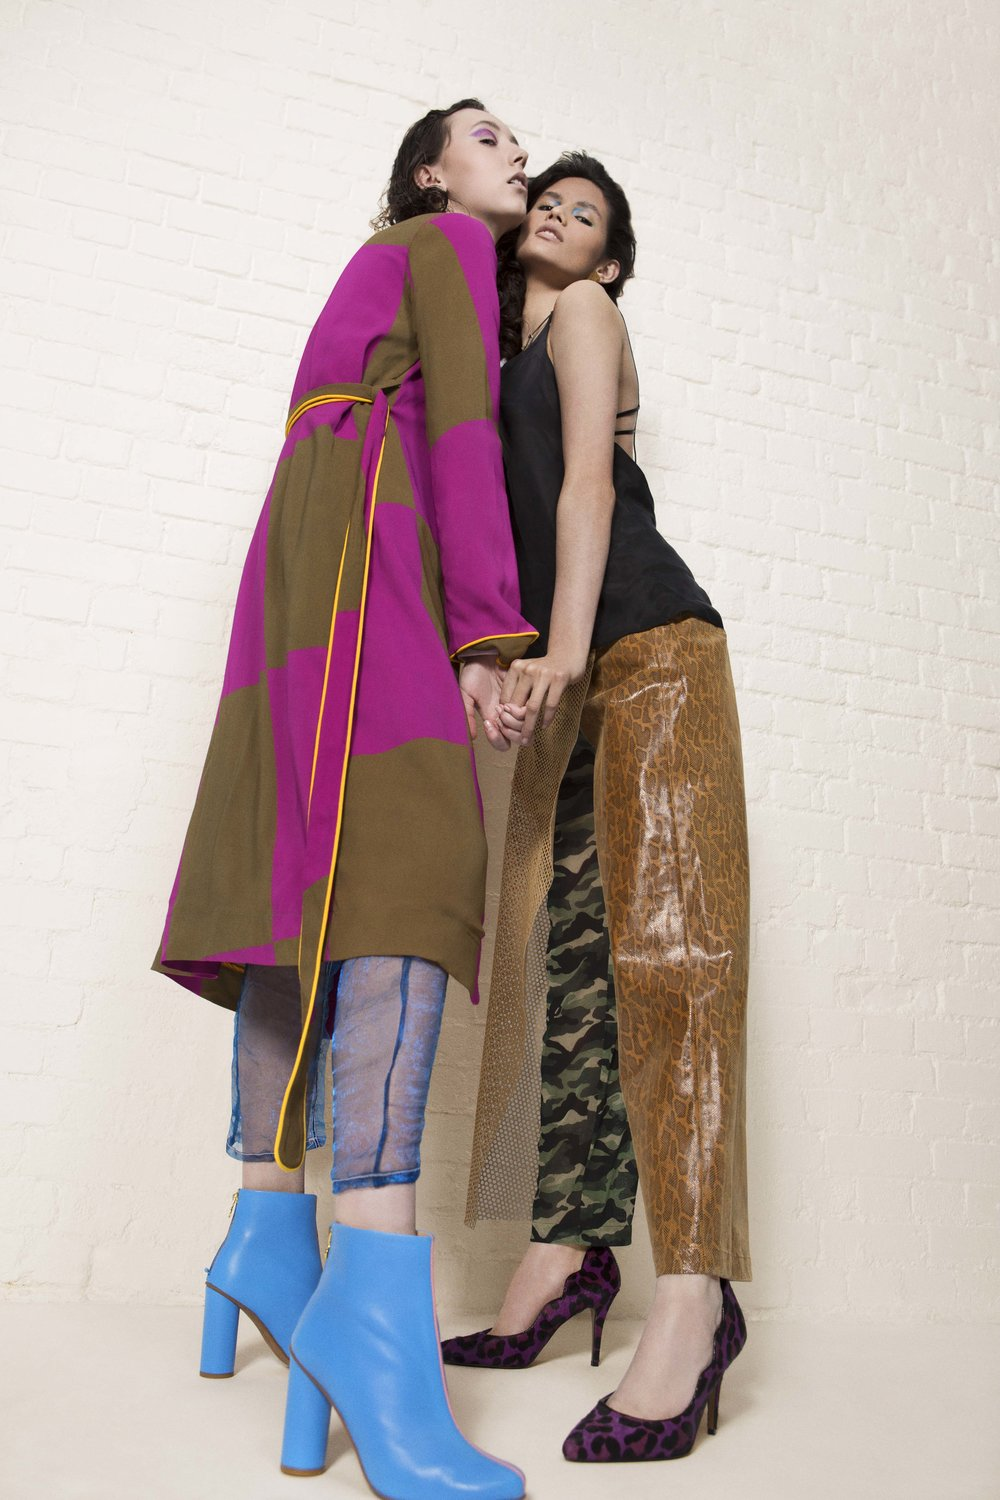 Antonie (Left) Jumper – URBAN SOPHISTICATION Overcoat – STINE GOYA Pants – FAUSTINE STEINMETZ (YOUNG BRITISH DESIGNERS) Footwear – STINE GOYA  Sara (Right) Top – TRAMP IN DISGUISE Pants – DANS LA VIE Earring – JOANNA CAVE (YOUNG BRITISH DESIGNERS) Necklace – VAN PETERSON Footwear -  ROKIT